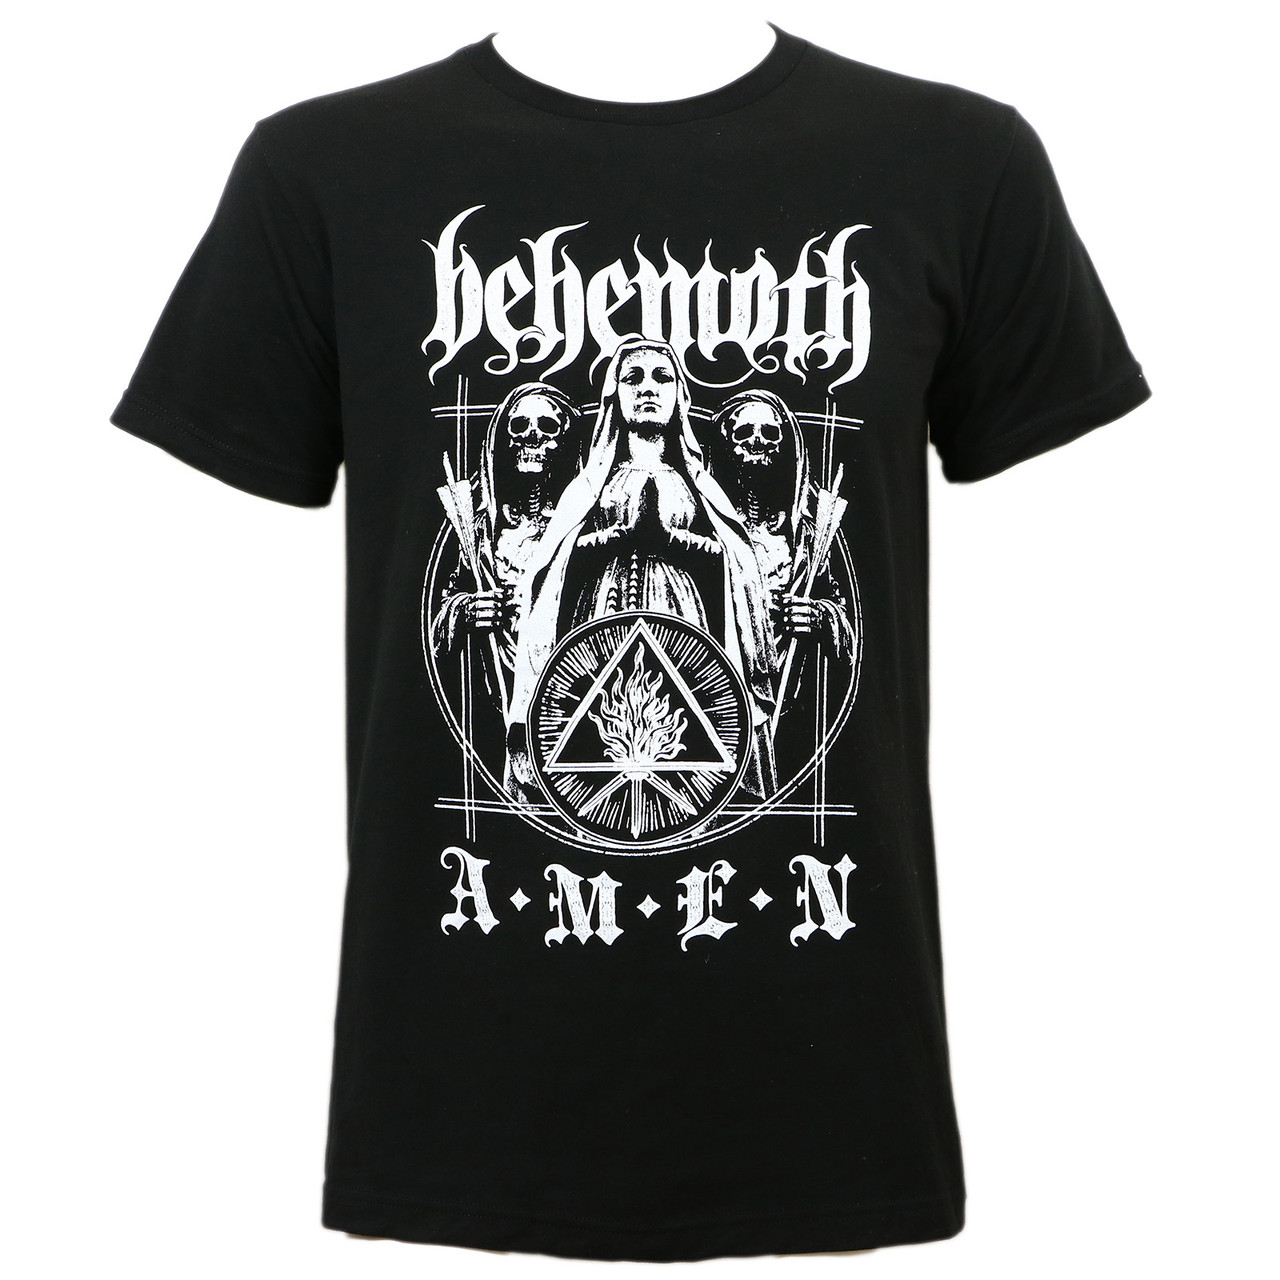 https://d3d71ba2asa5oz.cloudfront.net/12013655/images/10087356%20behemoth%20amen%20tee%20black%20(3).jpg